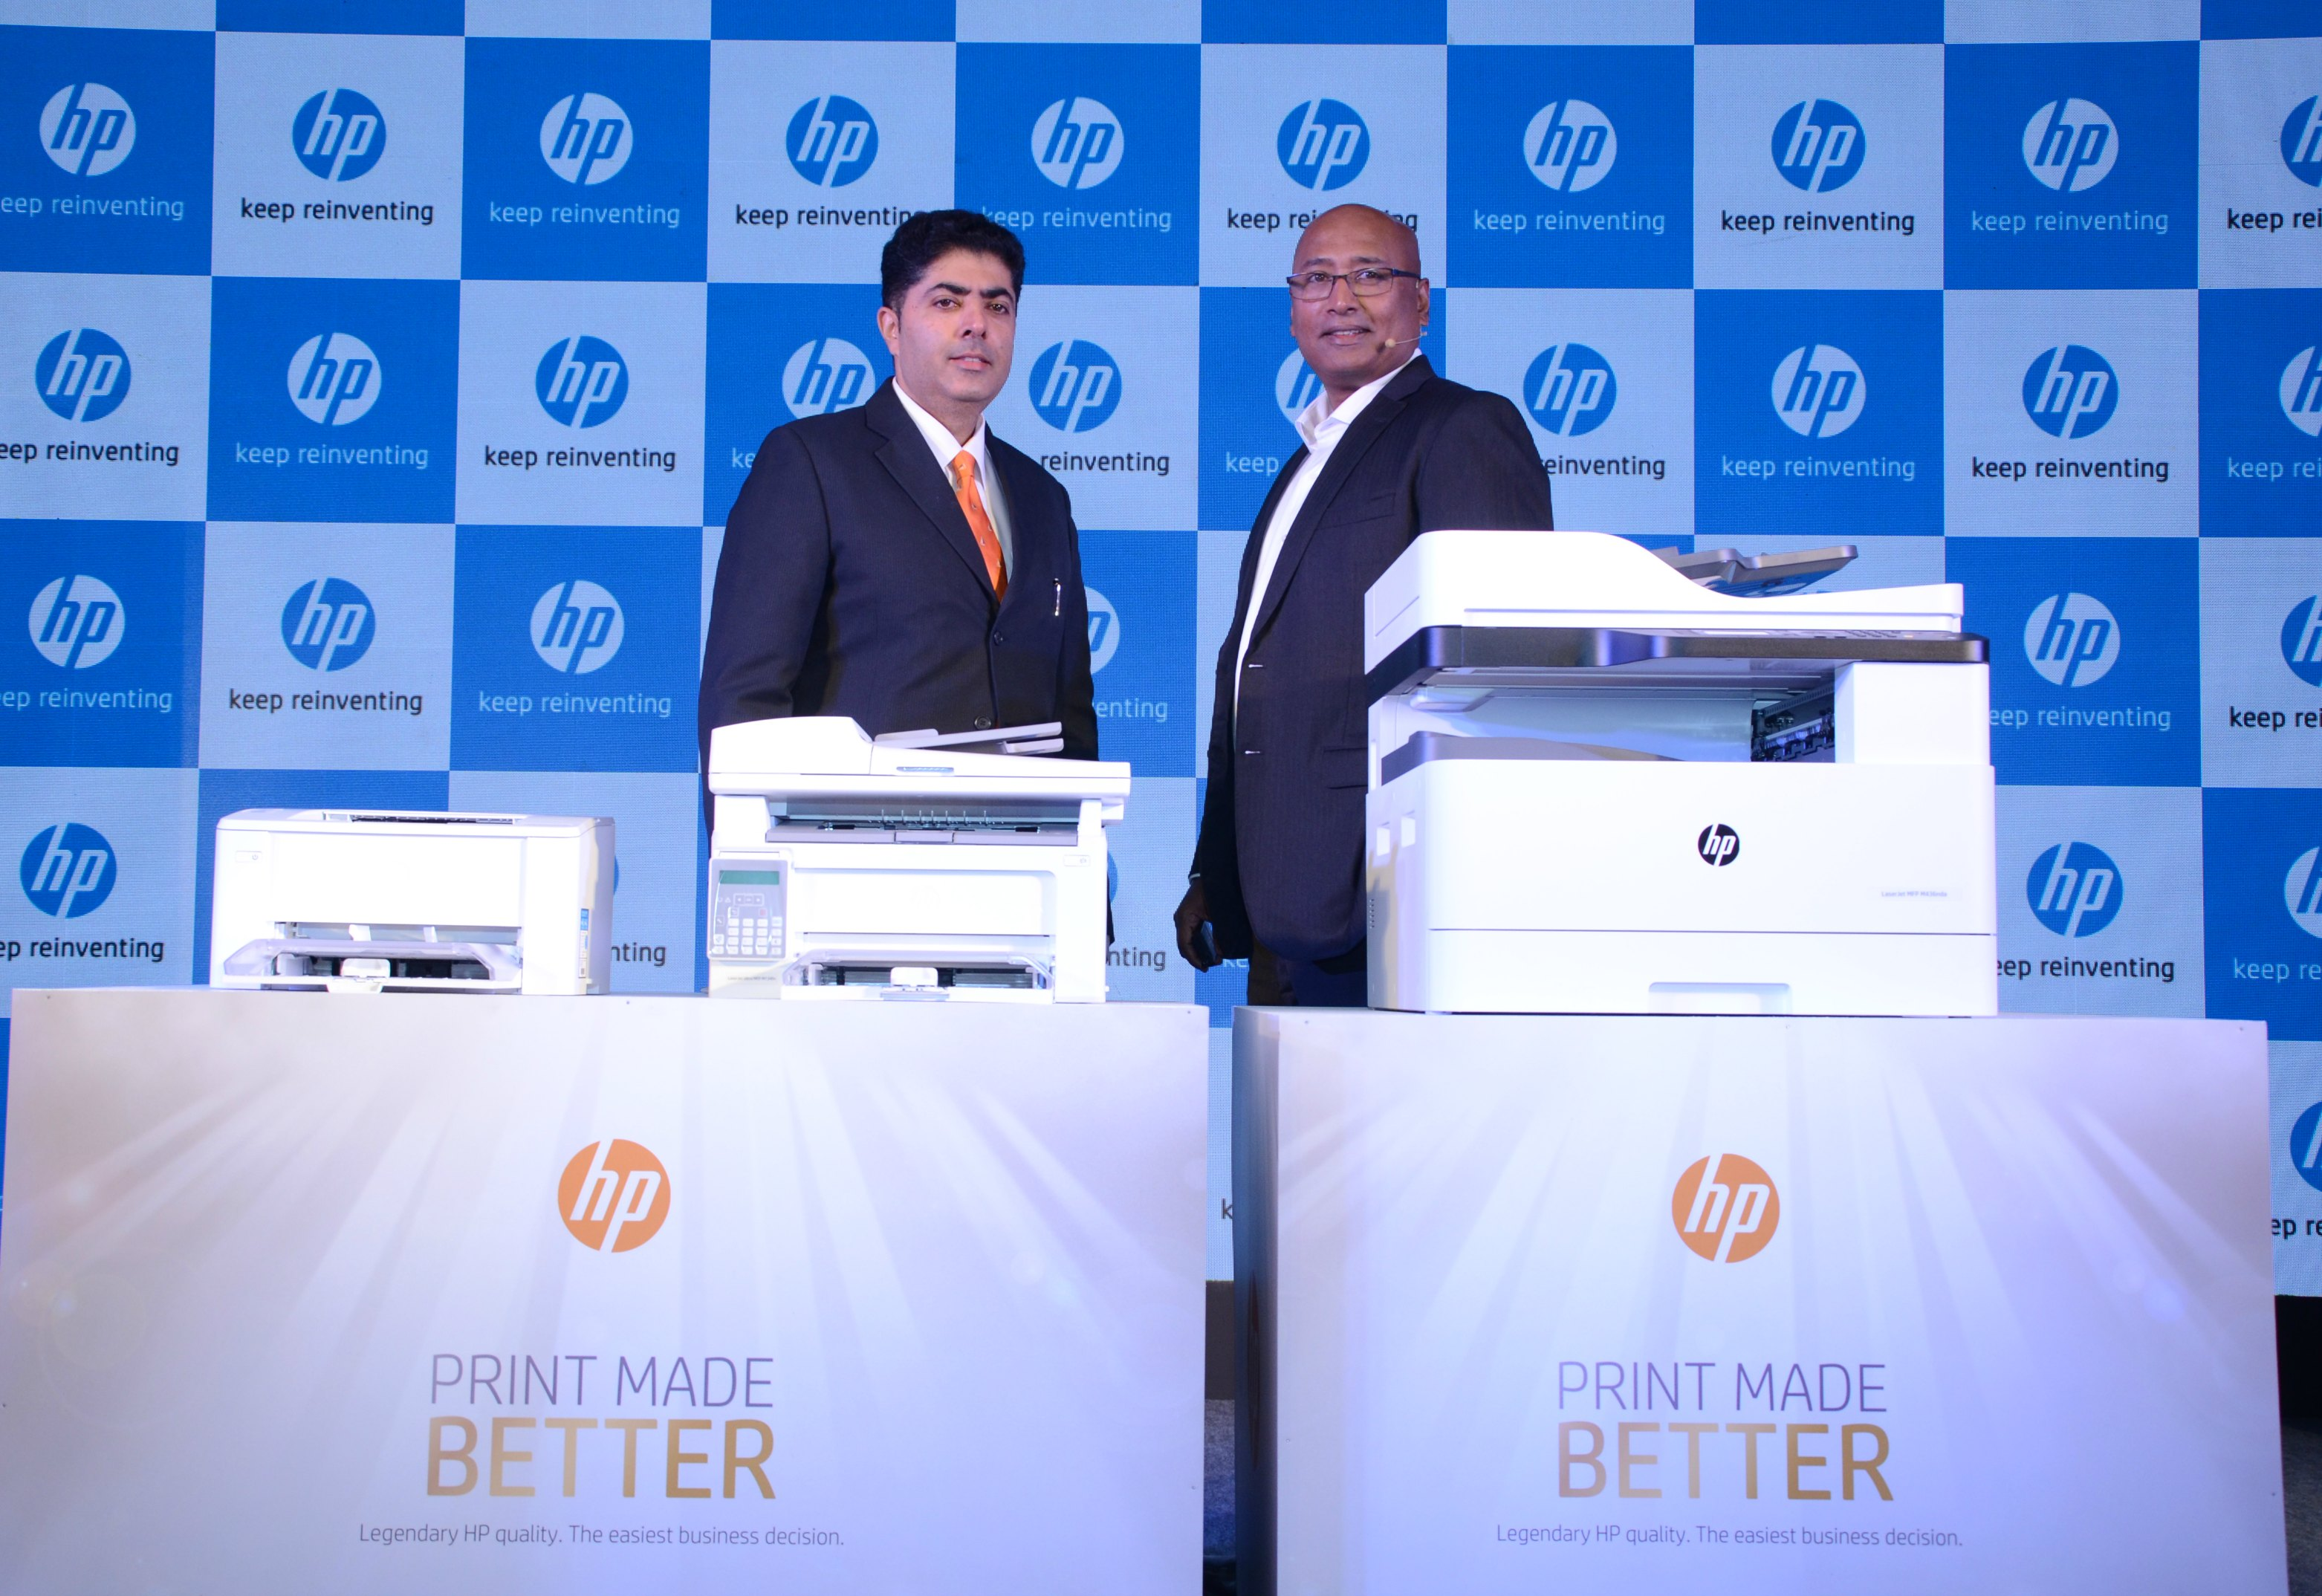 hp-inkjet-and-scanjet-printers